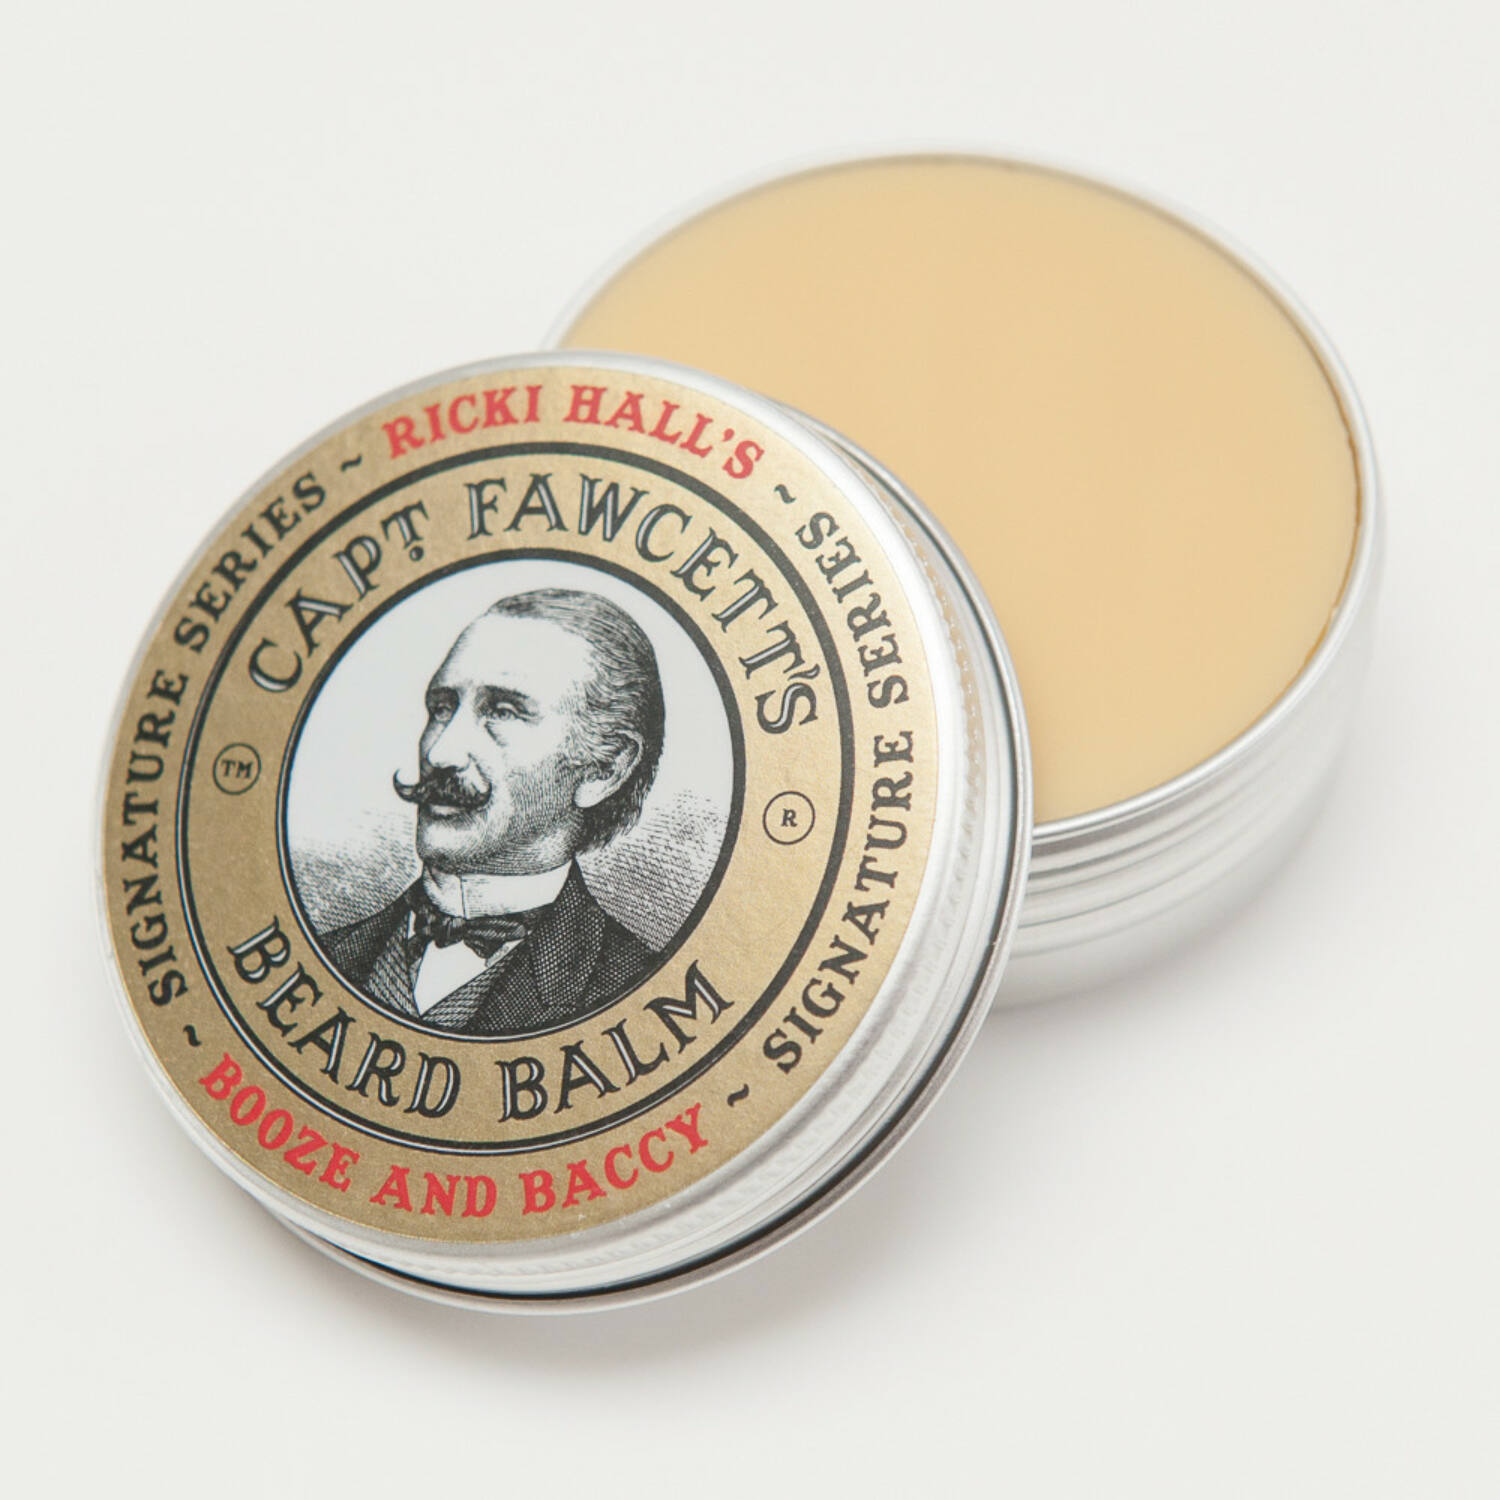 Captain Fawcett Booze and Baccy szakállbalzsam 60ml